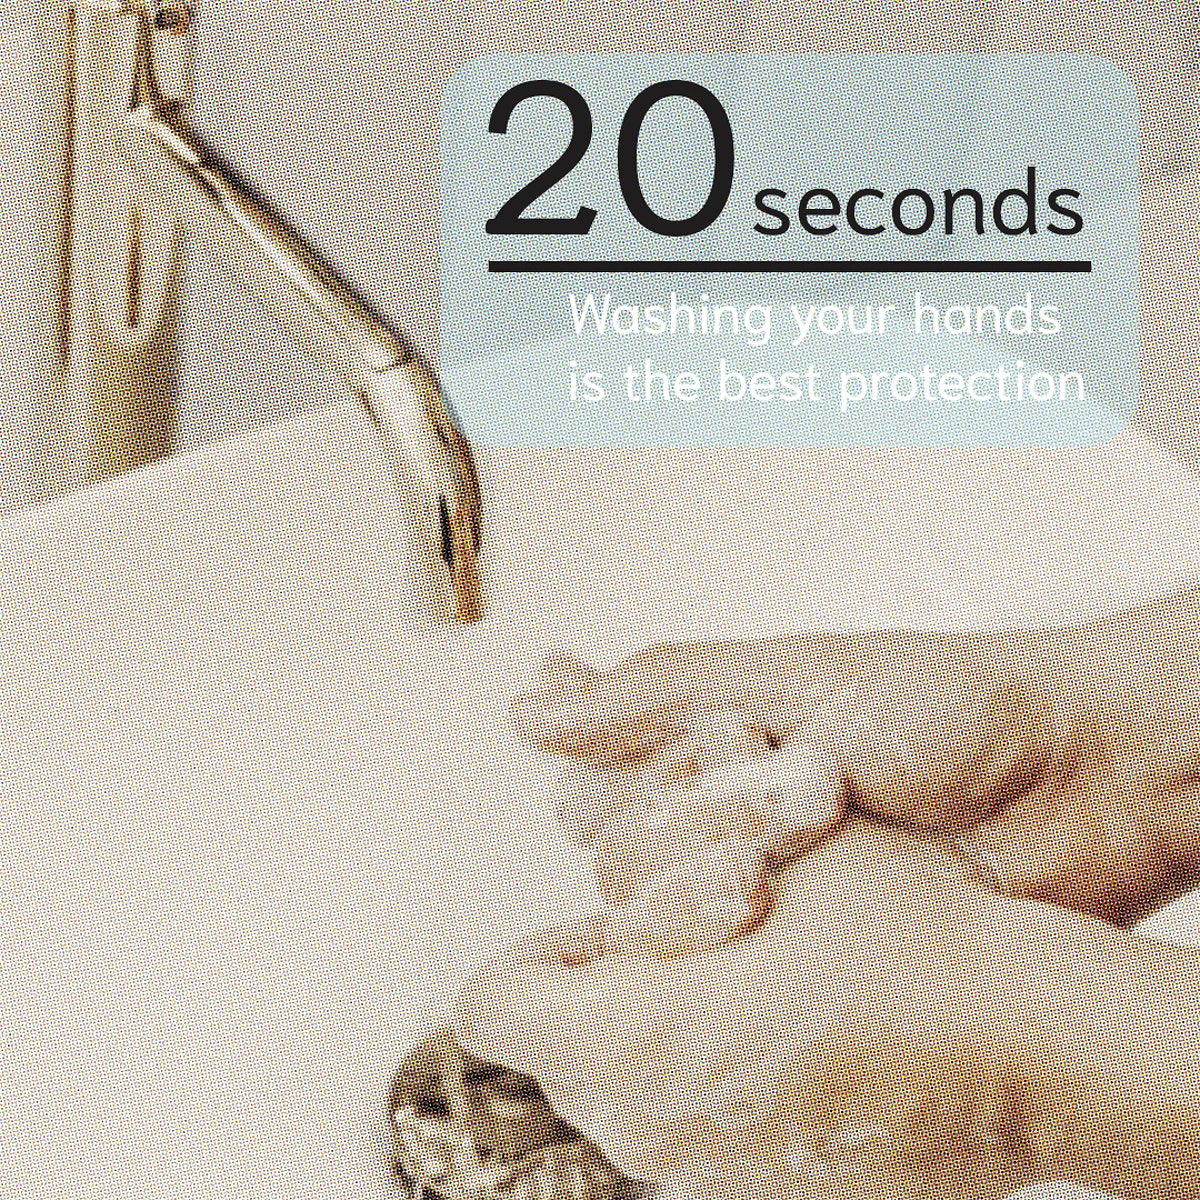 20 seconds washing your hands is the best protection social template mockup